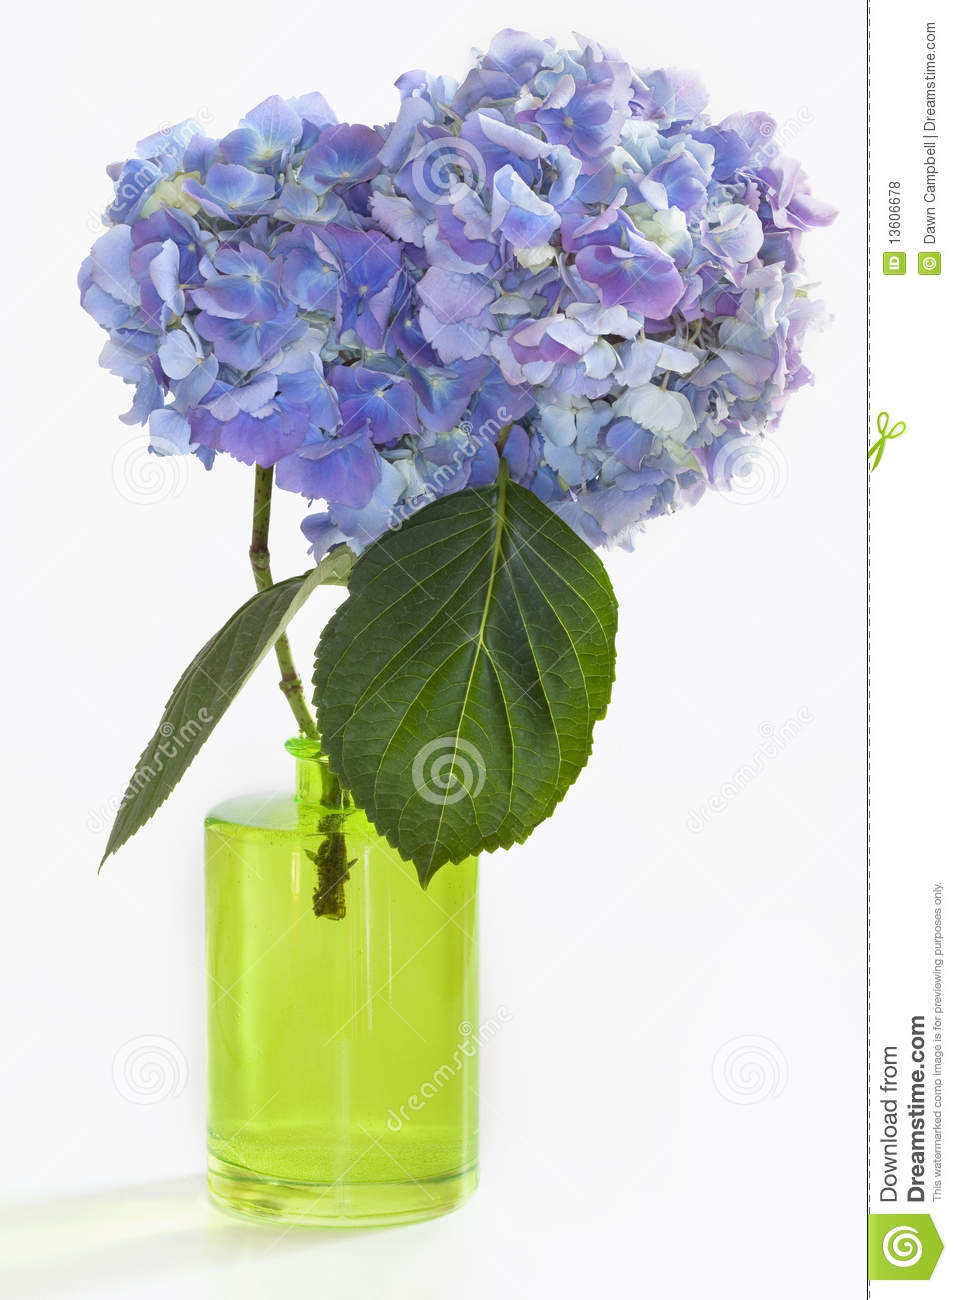 Two Hydrangea Blooms In Green Vase On White Royalty Free Stock Photos Image 13606678